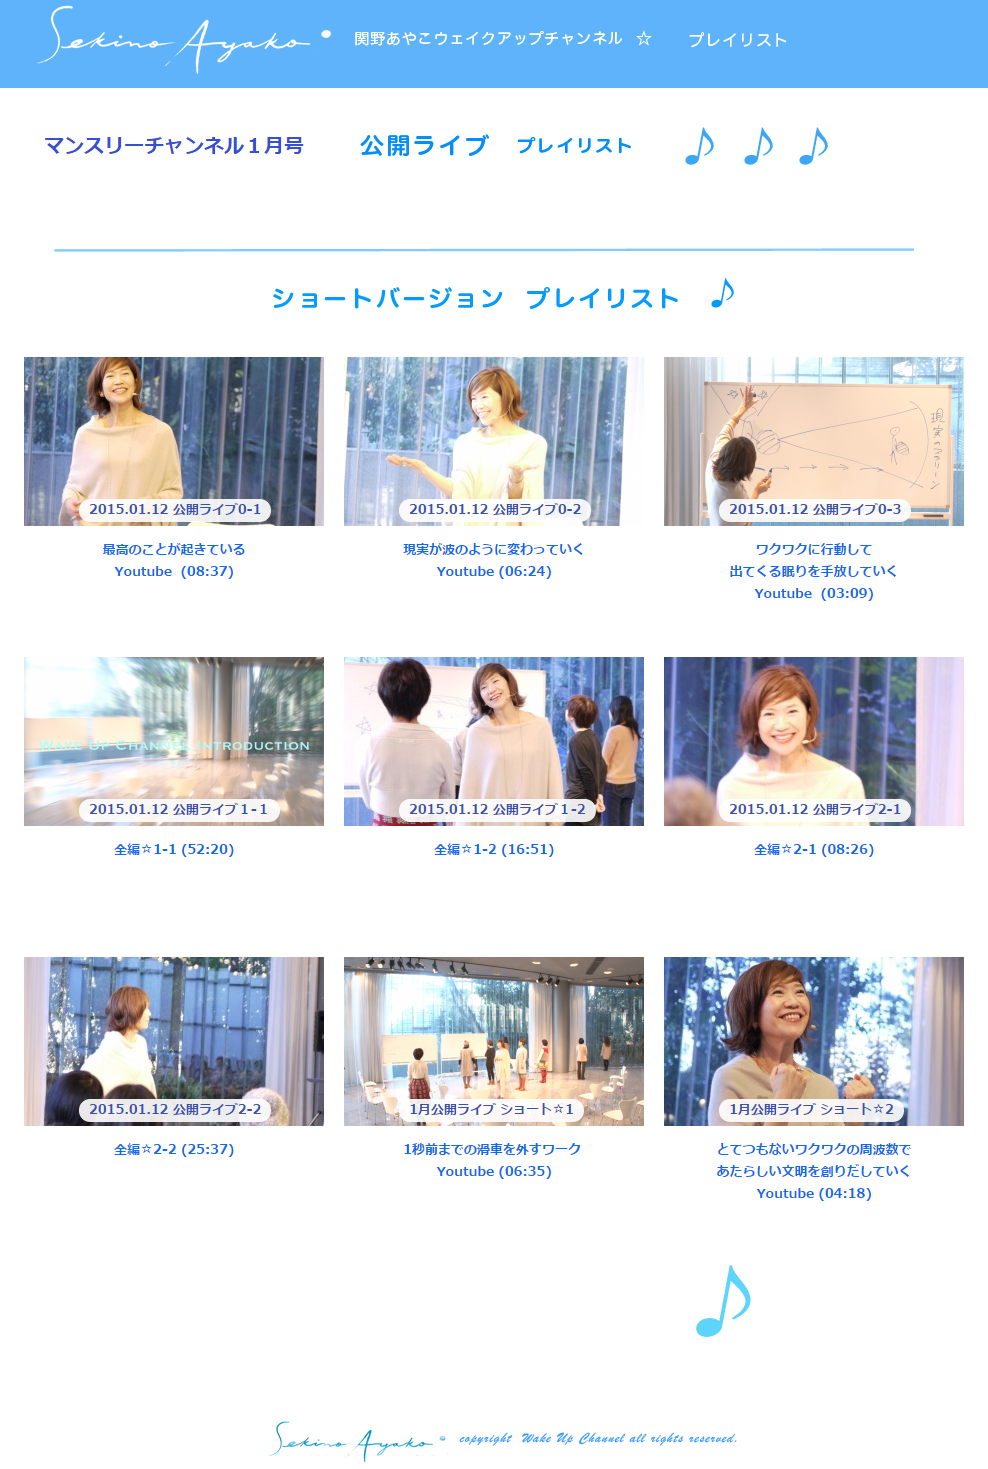 screencapture-sekinoayako-com-playlist-monthly-2015-01si3cu